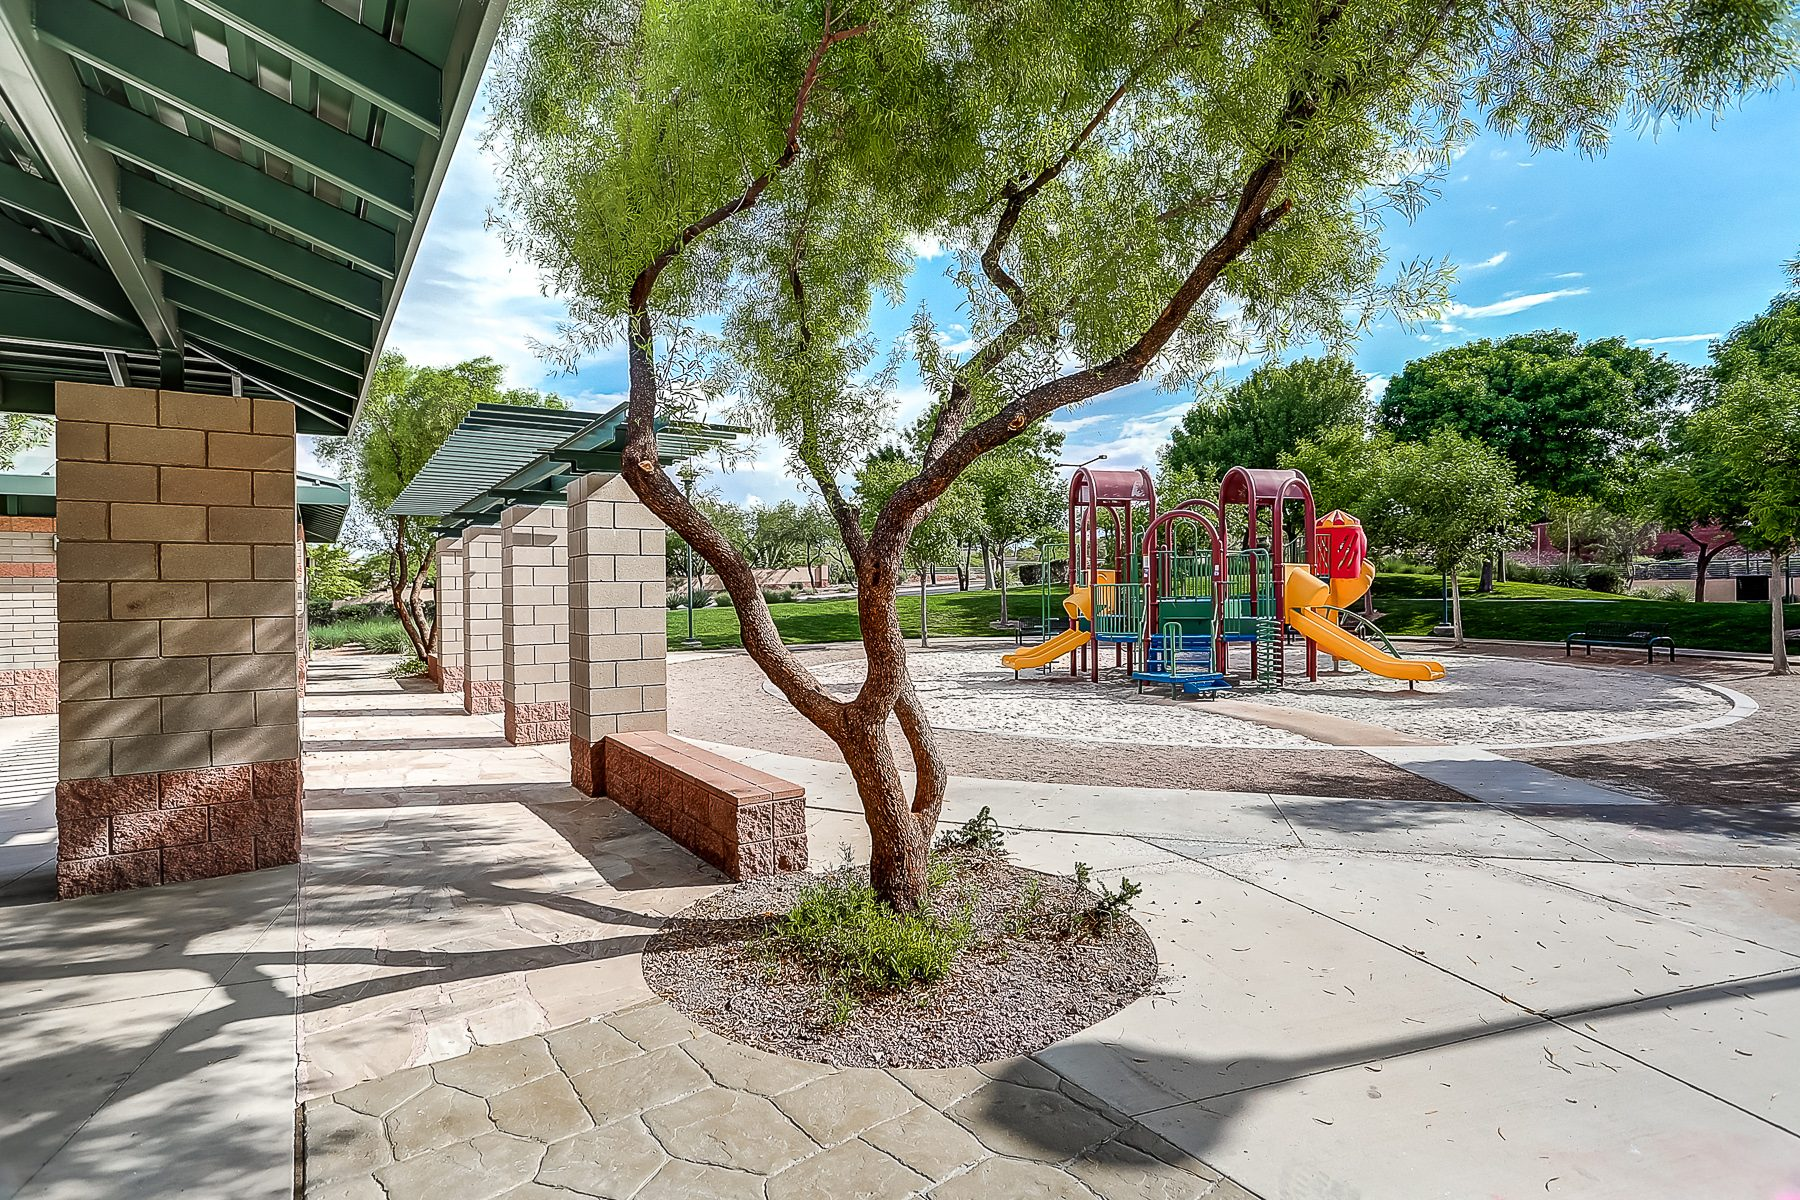 12 summerlin community parks